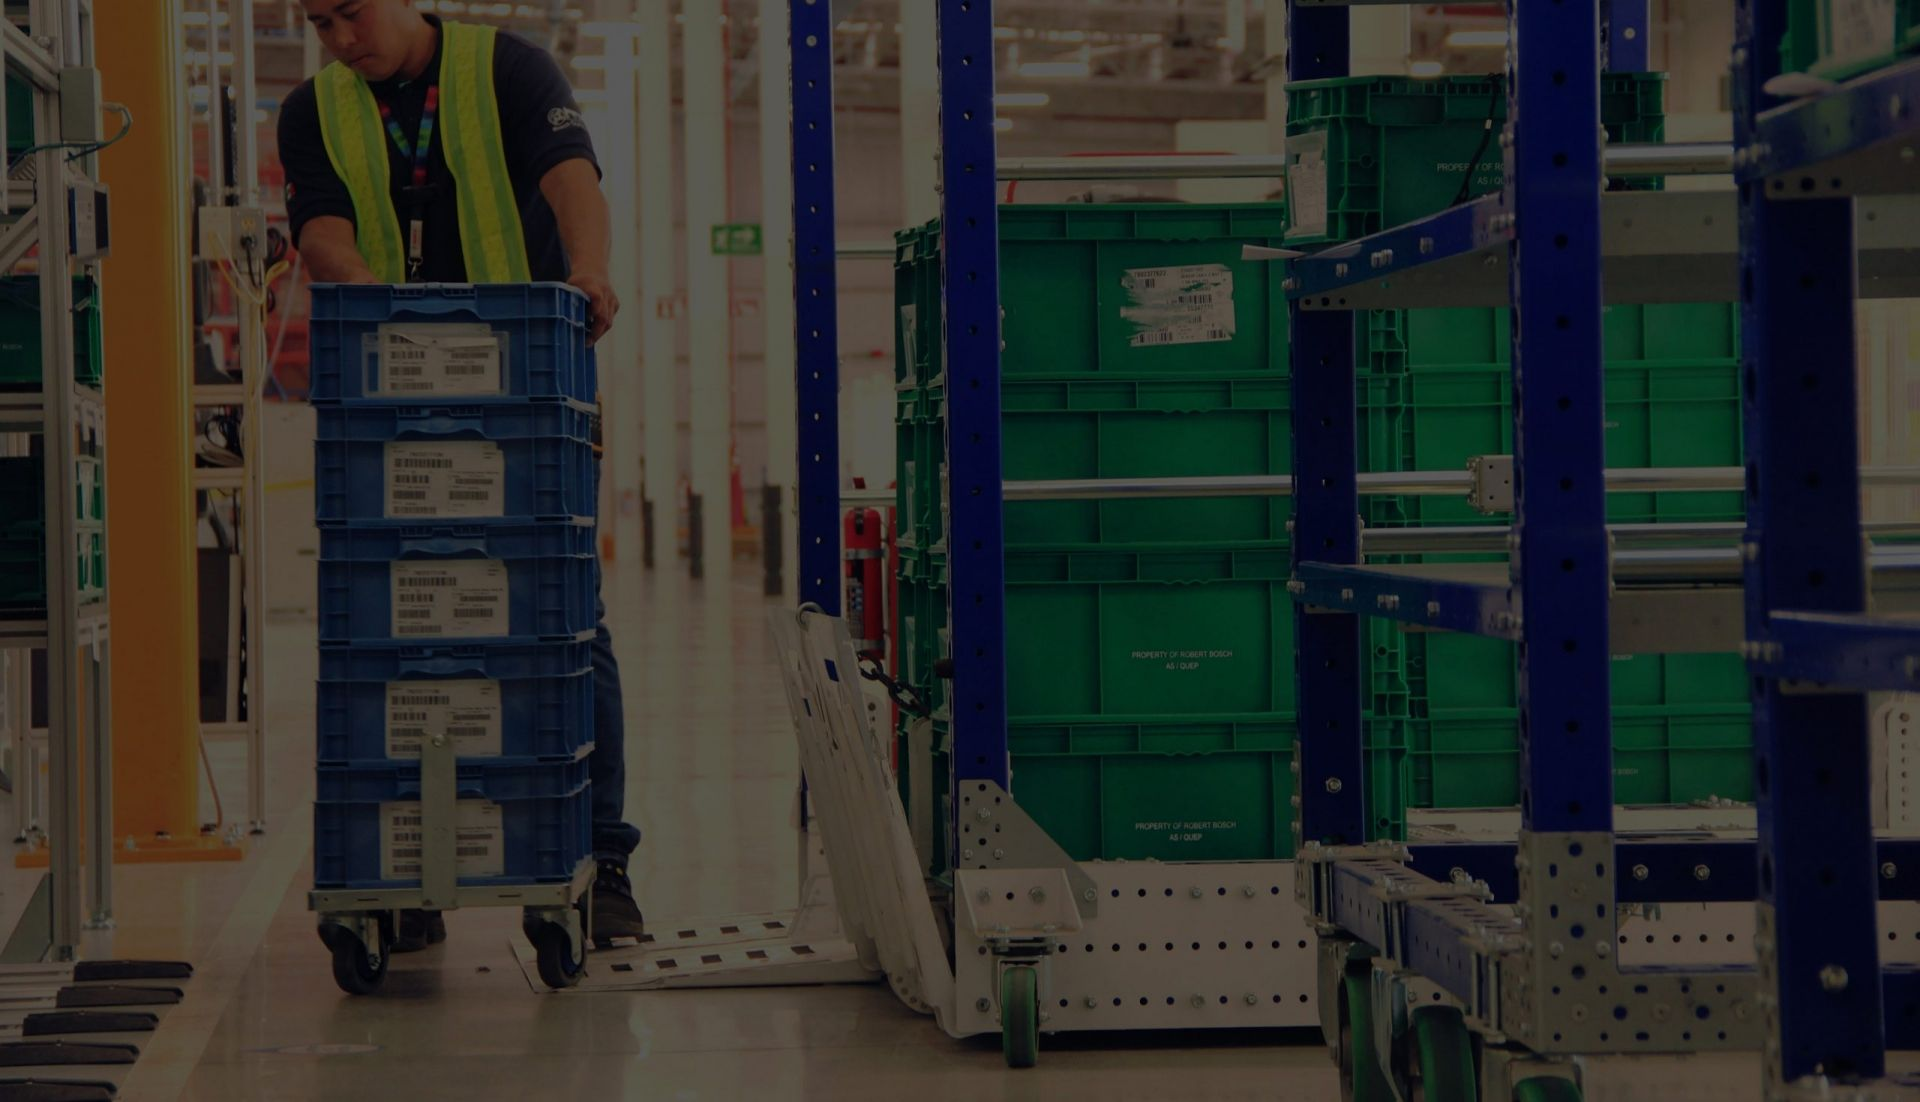 Material Handling Carts by FlexQube